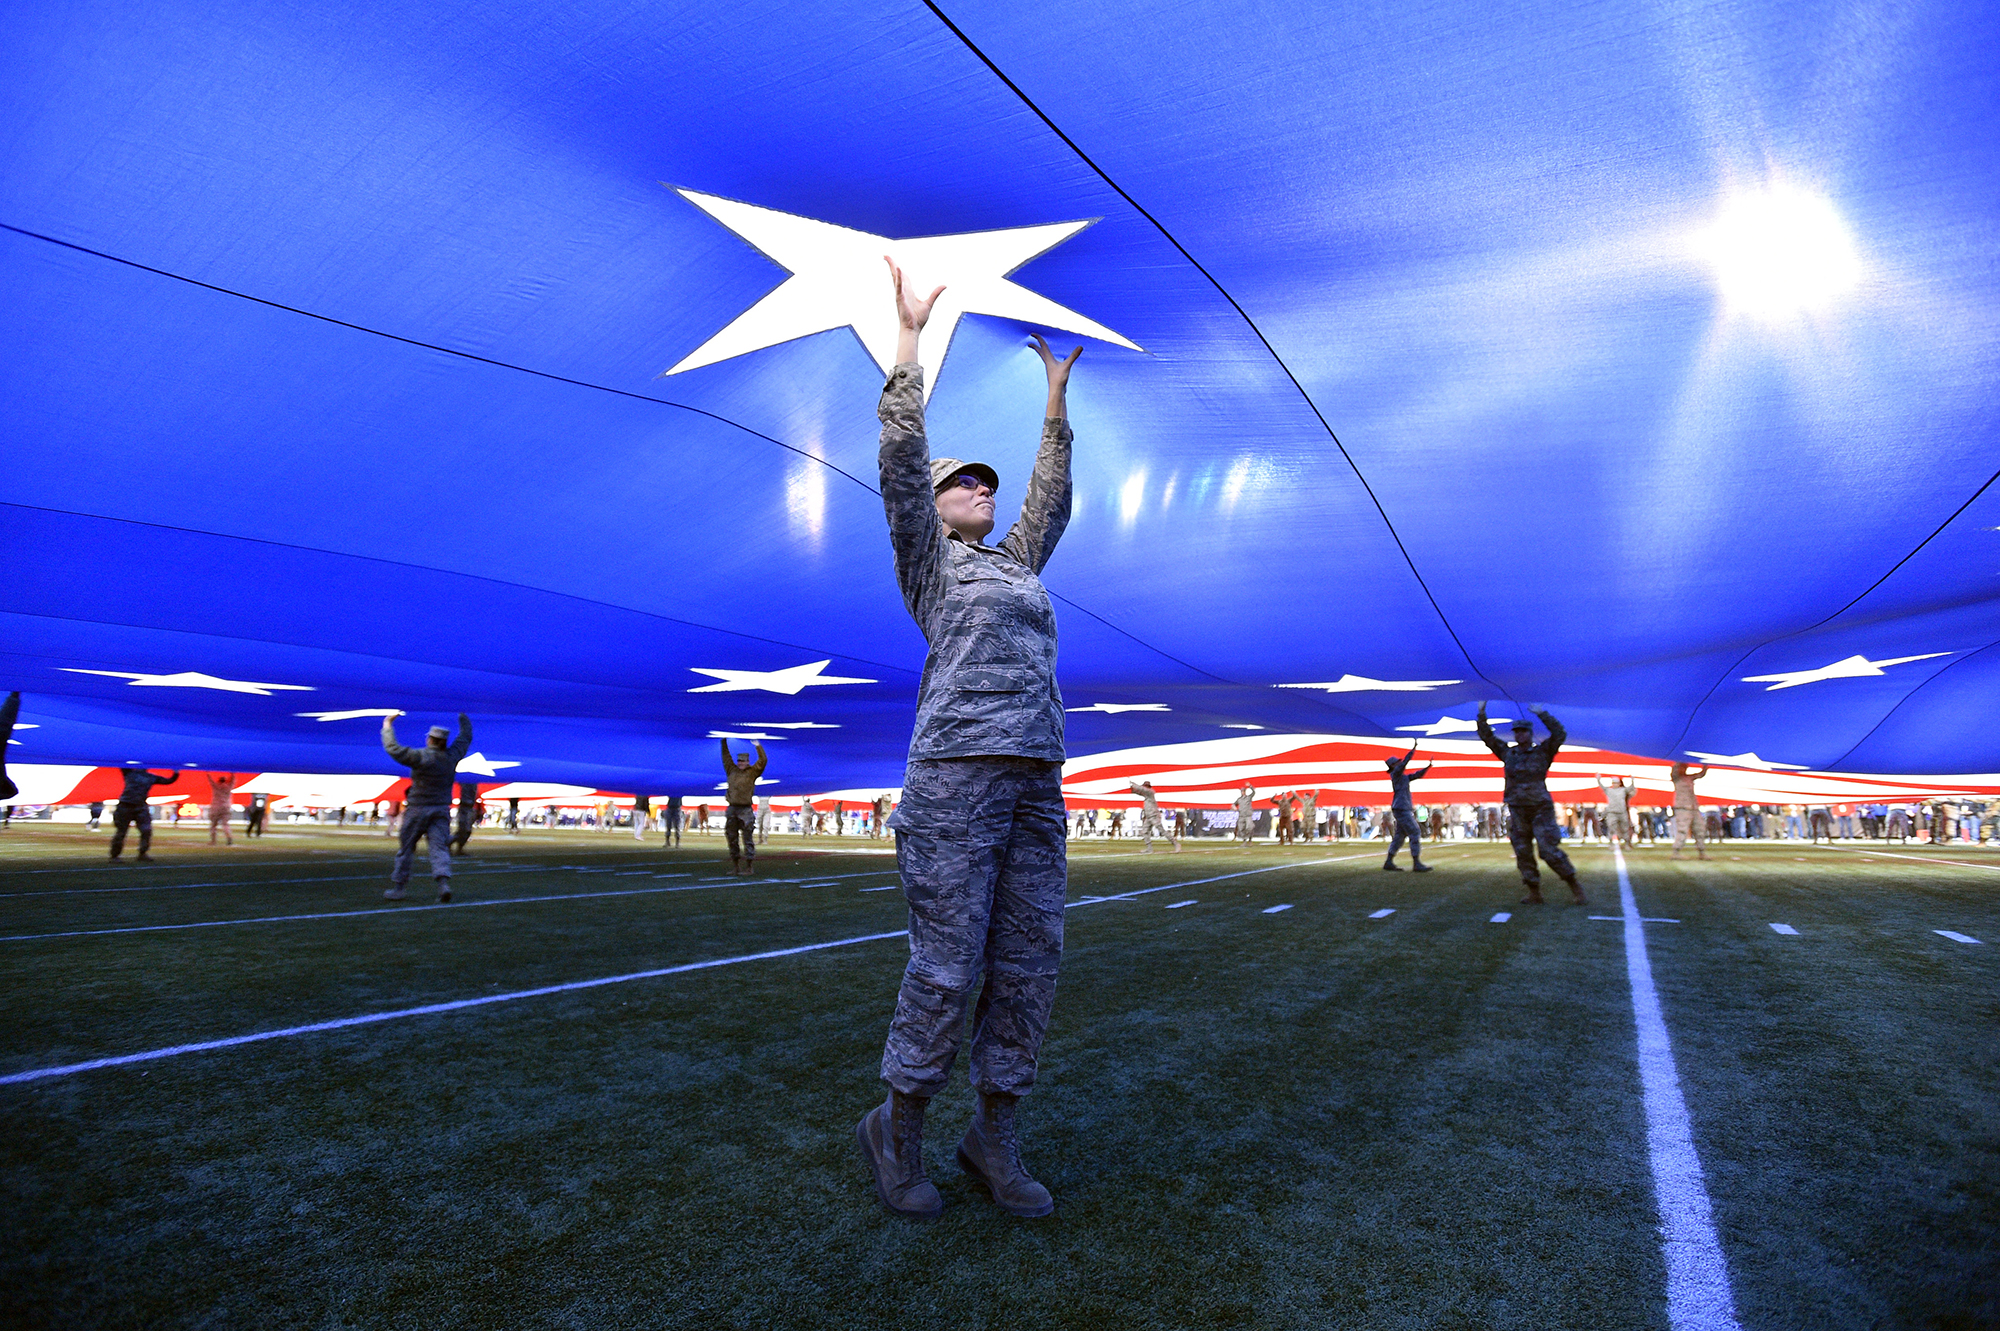 A member of the U.S. Air Force holds up a full-field American flag as it is displayed on the field before the Mitsubishi Motors Las Vegas Bowl between the Washington Huskies and the Boise State Broncos at Sam Boyd Stadium on Dec. 21, 2019 in Las Vegas. (David Becker/Getty Images)